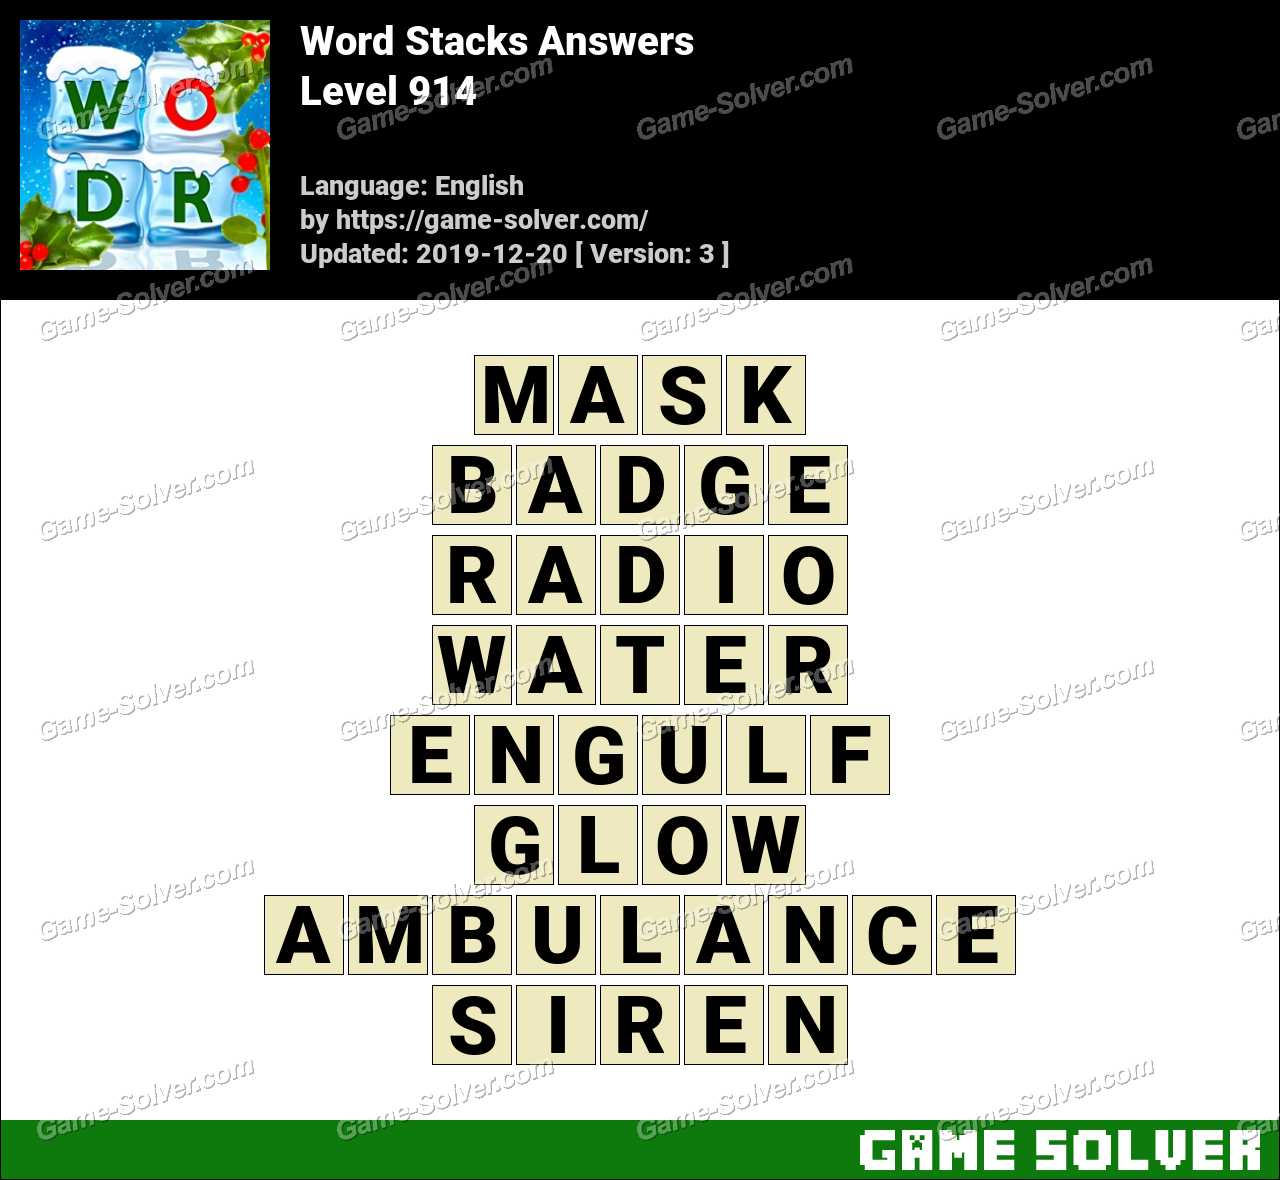 Word Stacks Level 914 Answers